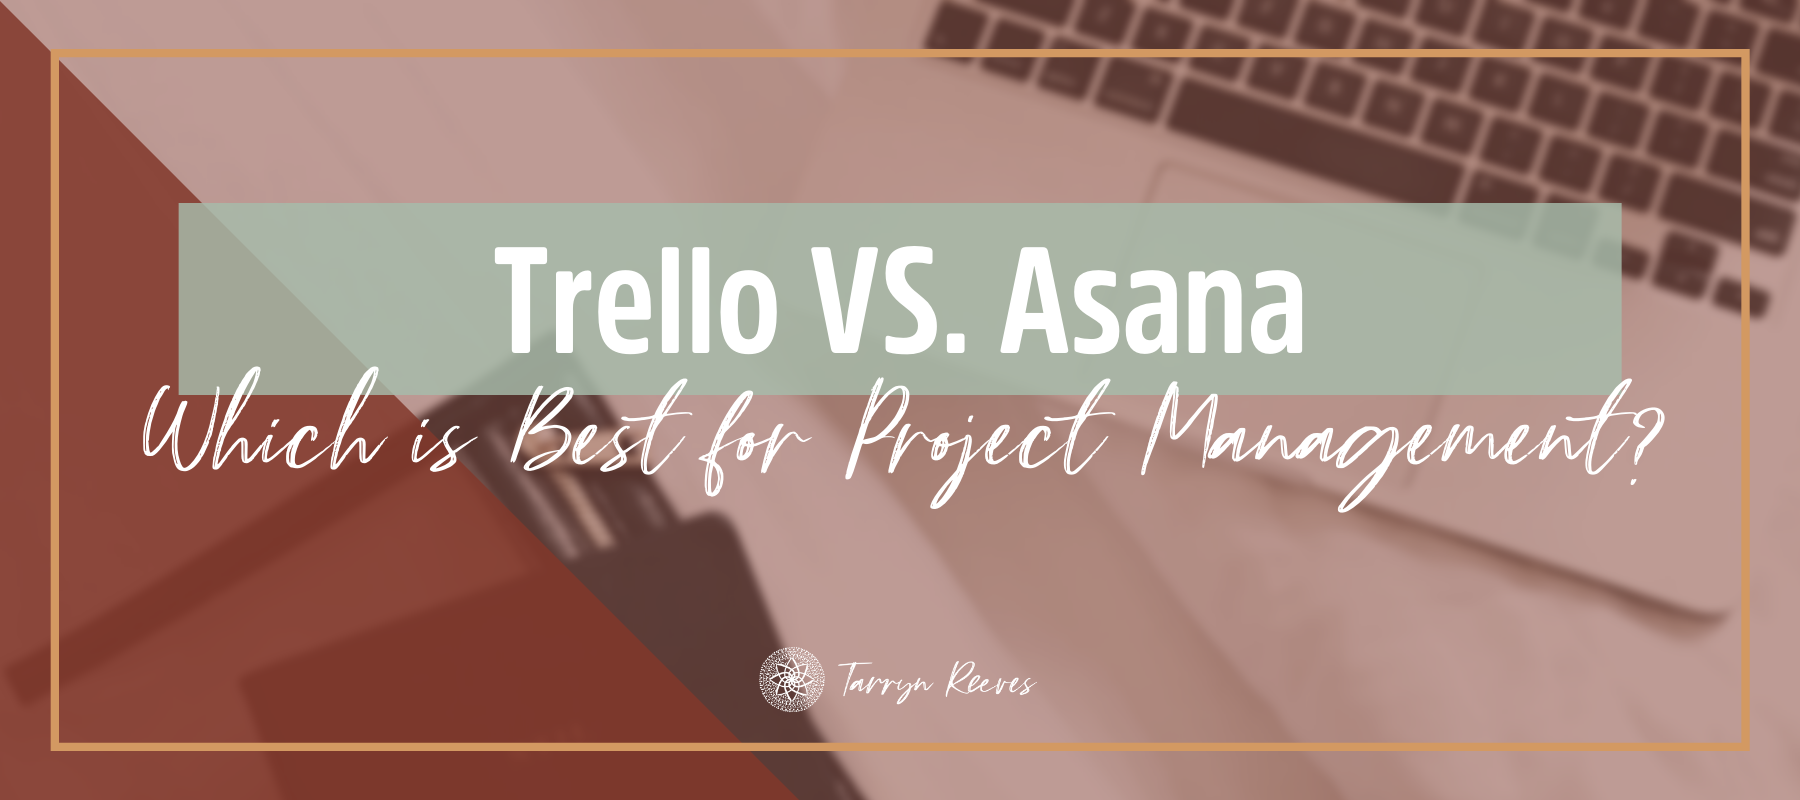 Trello Vs Asana - Which is Best for Project Management?